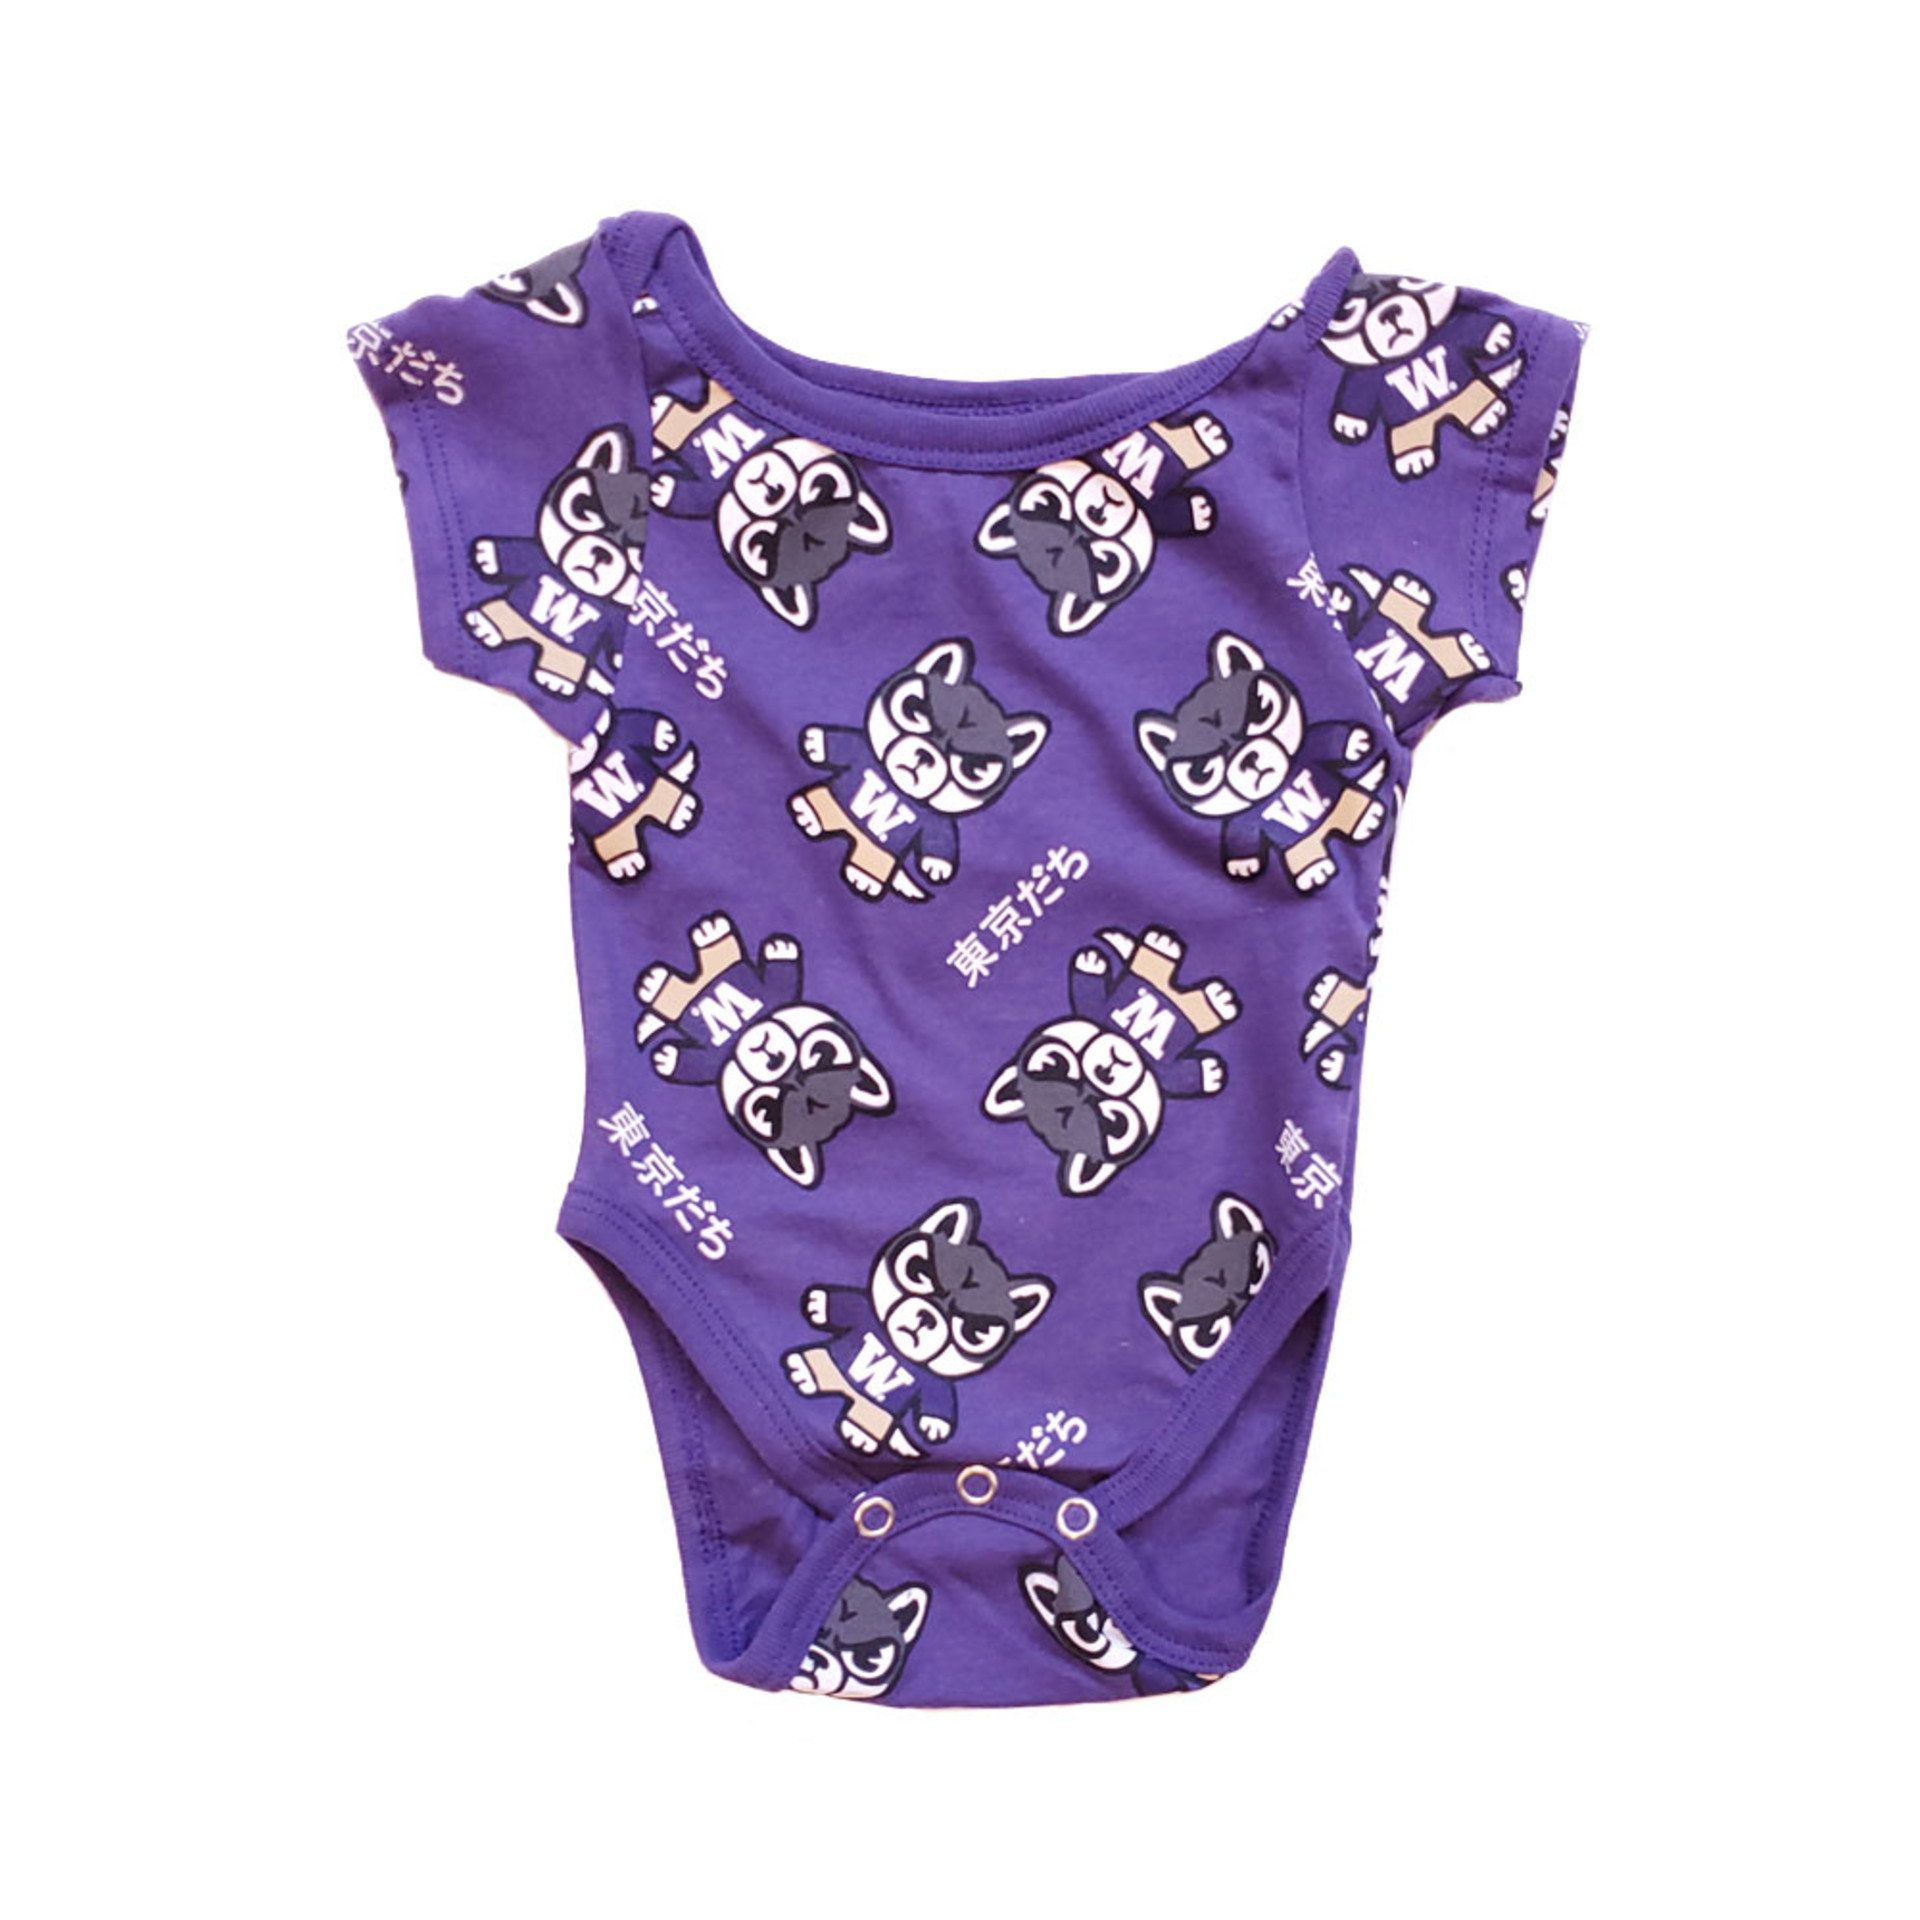 Retro Brand Baby Purple Tokyodachi Allover Bodysuit